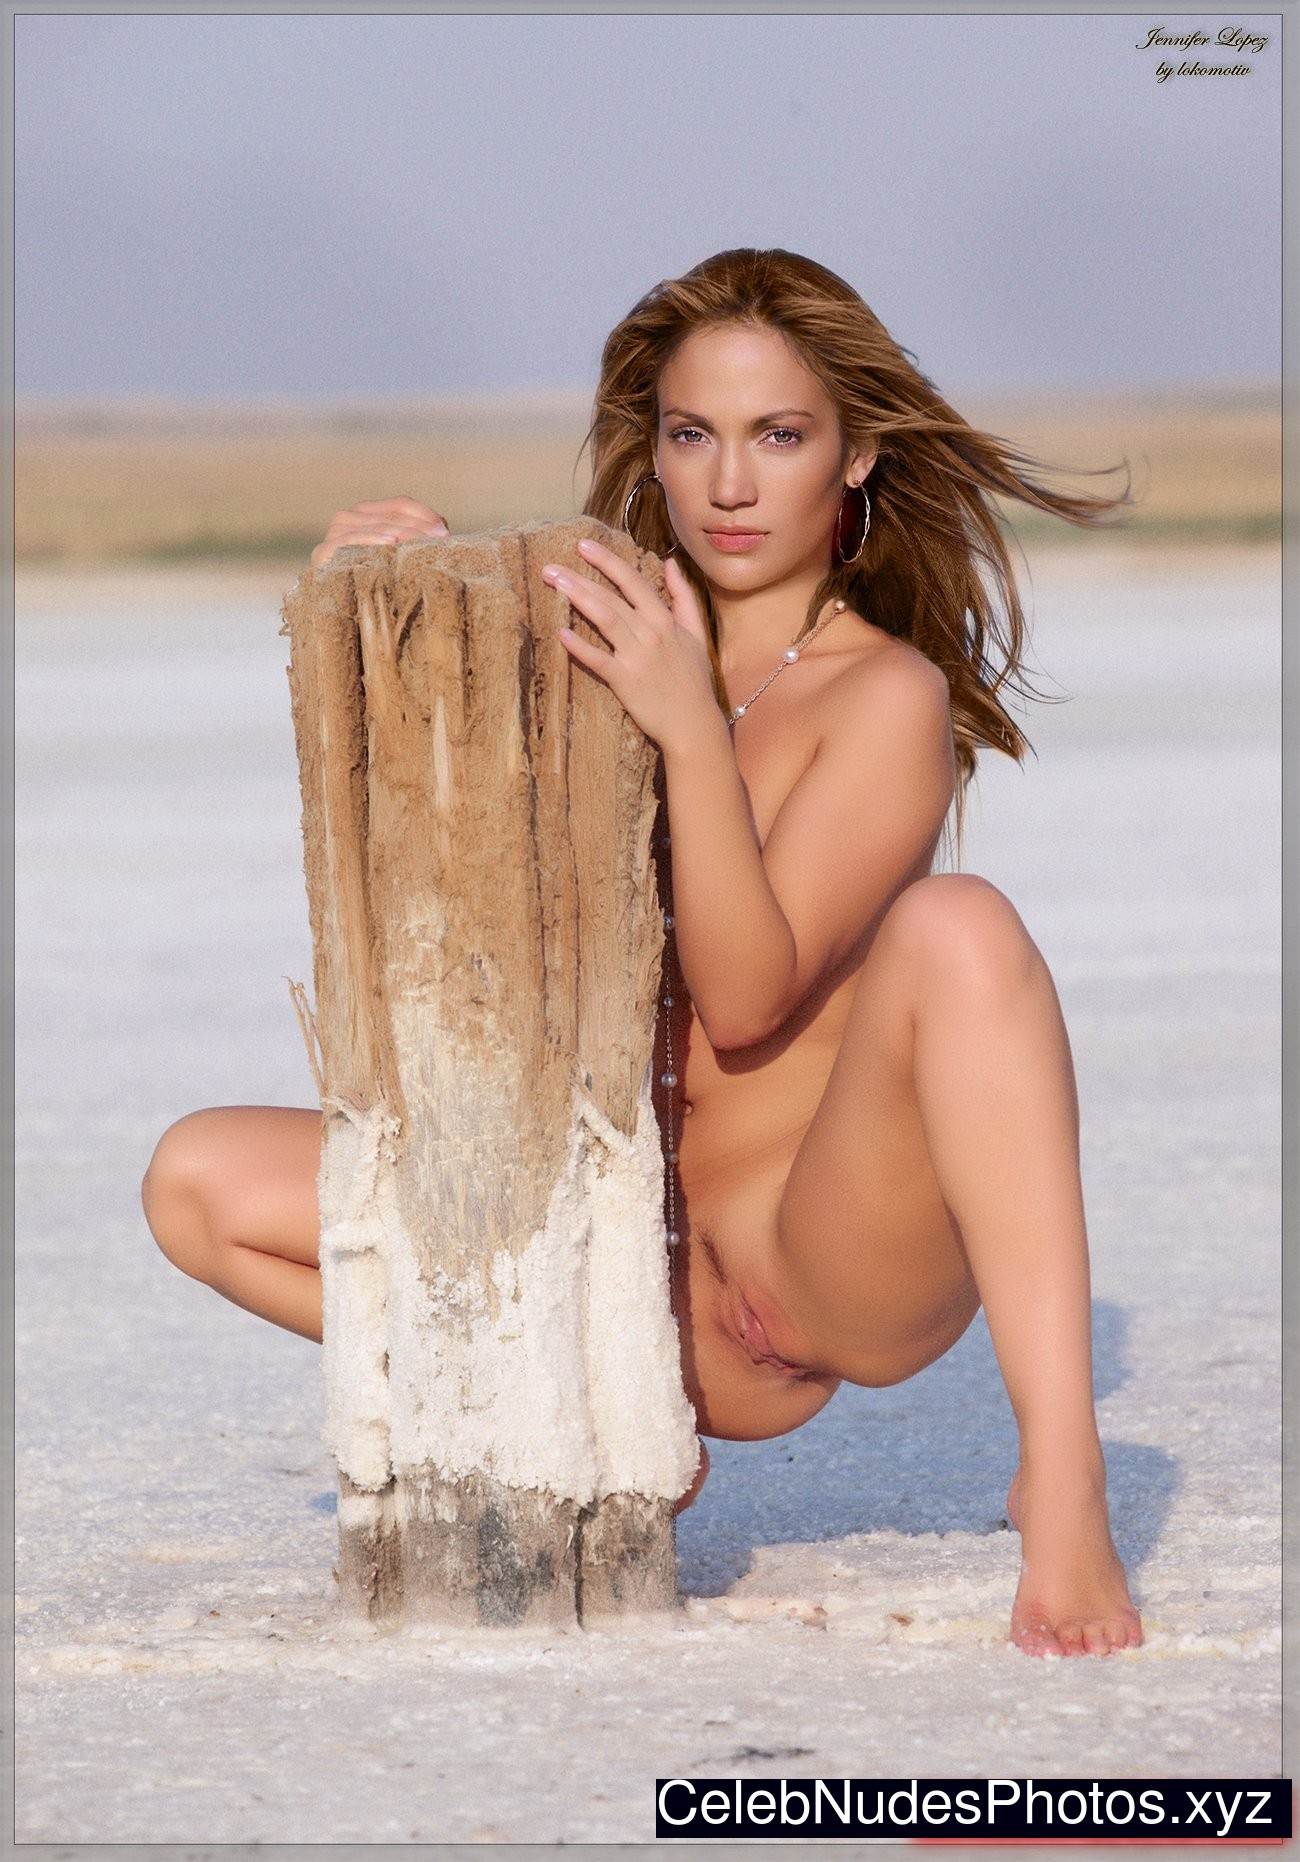 Jennifer lopez virgin naked